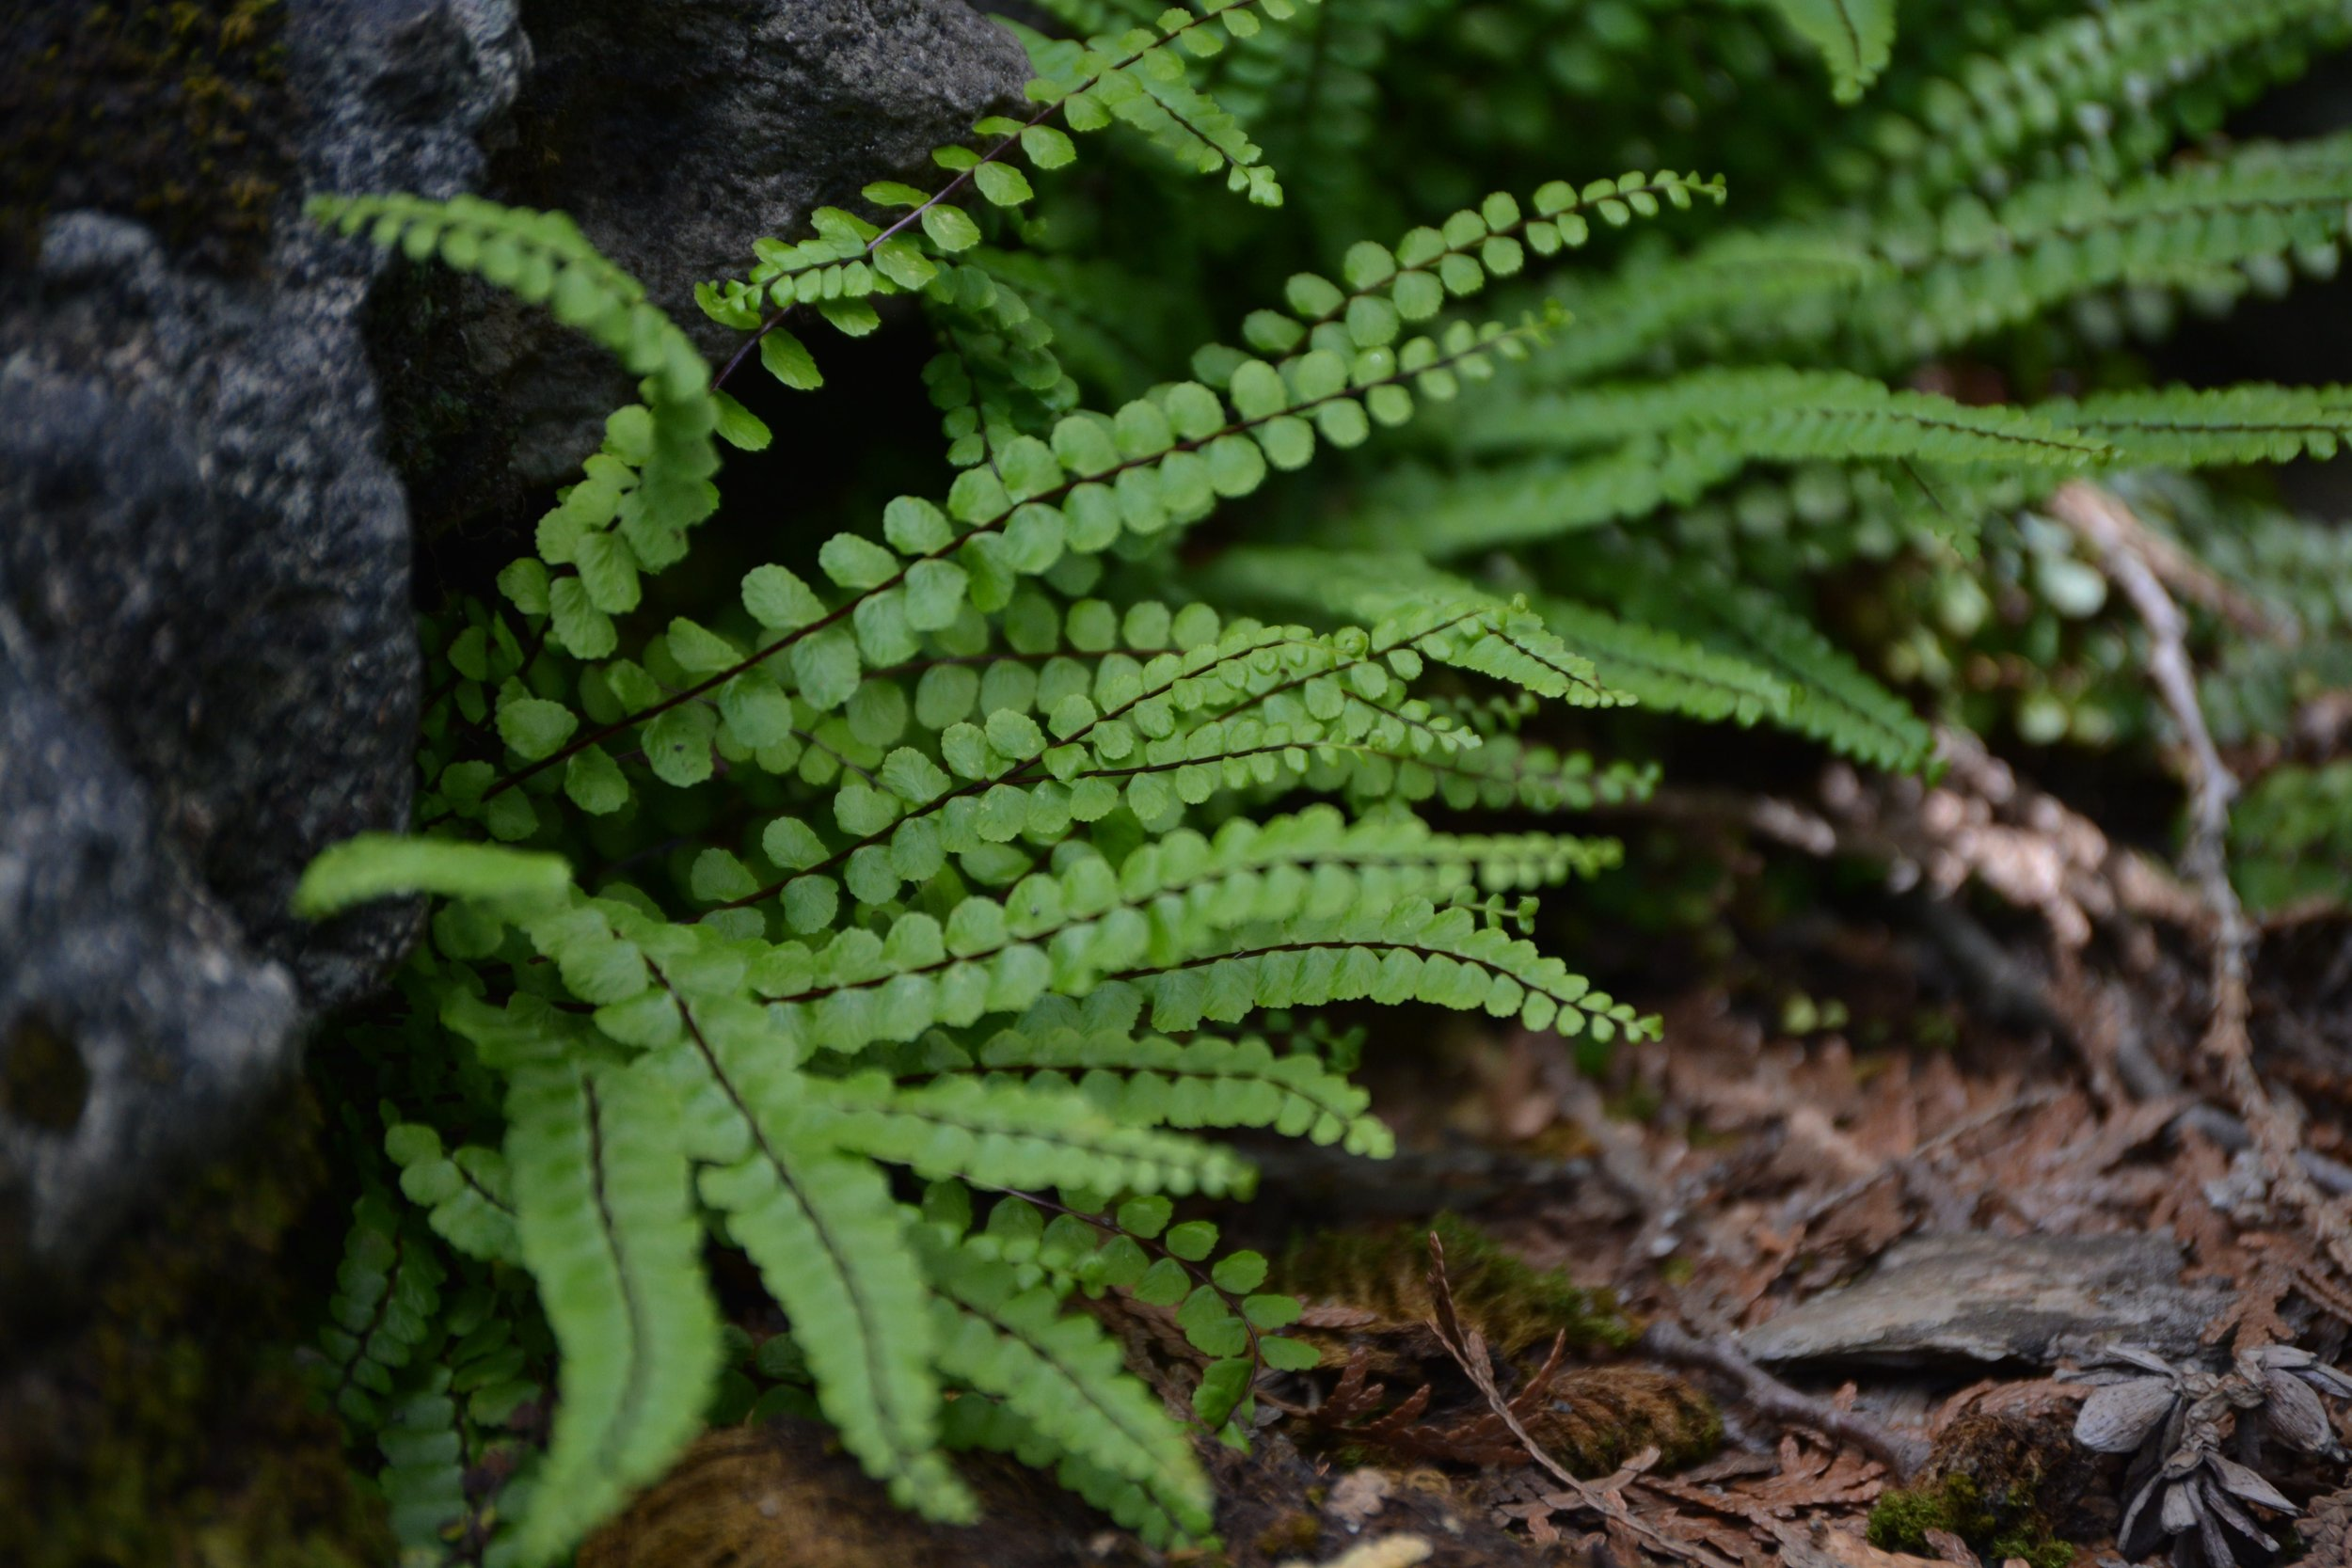 Field Trips - Maidenhair Spleenwort by John Anderson